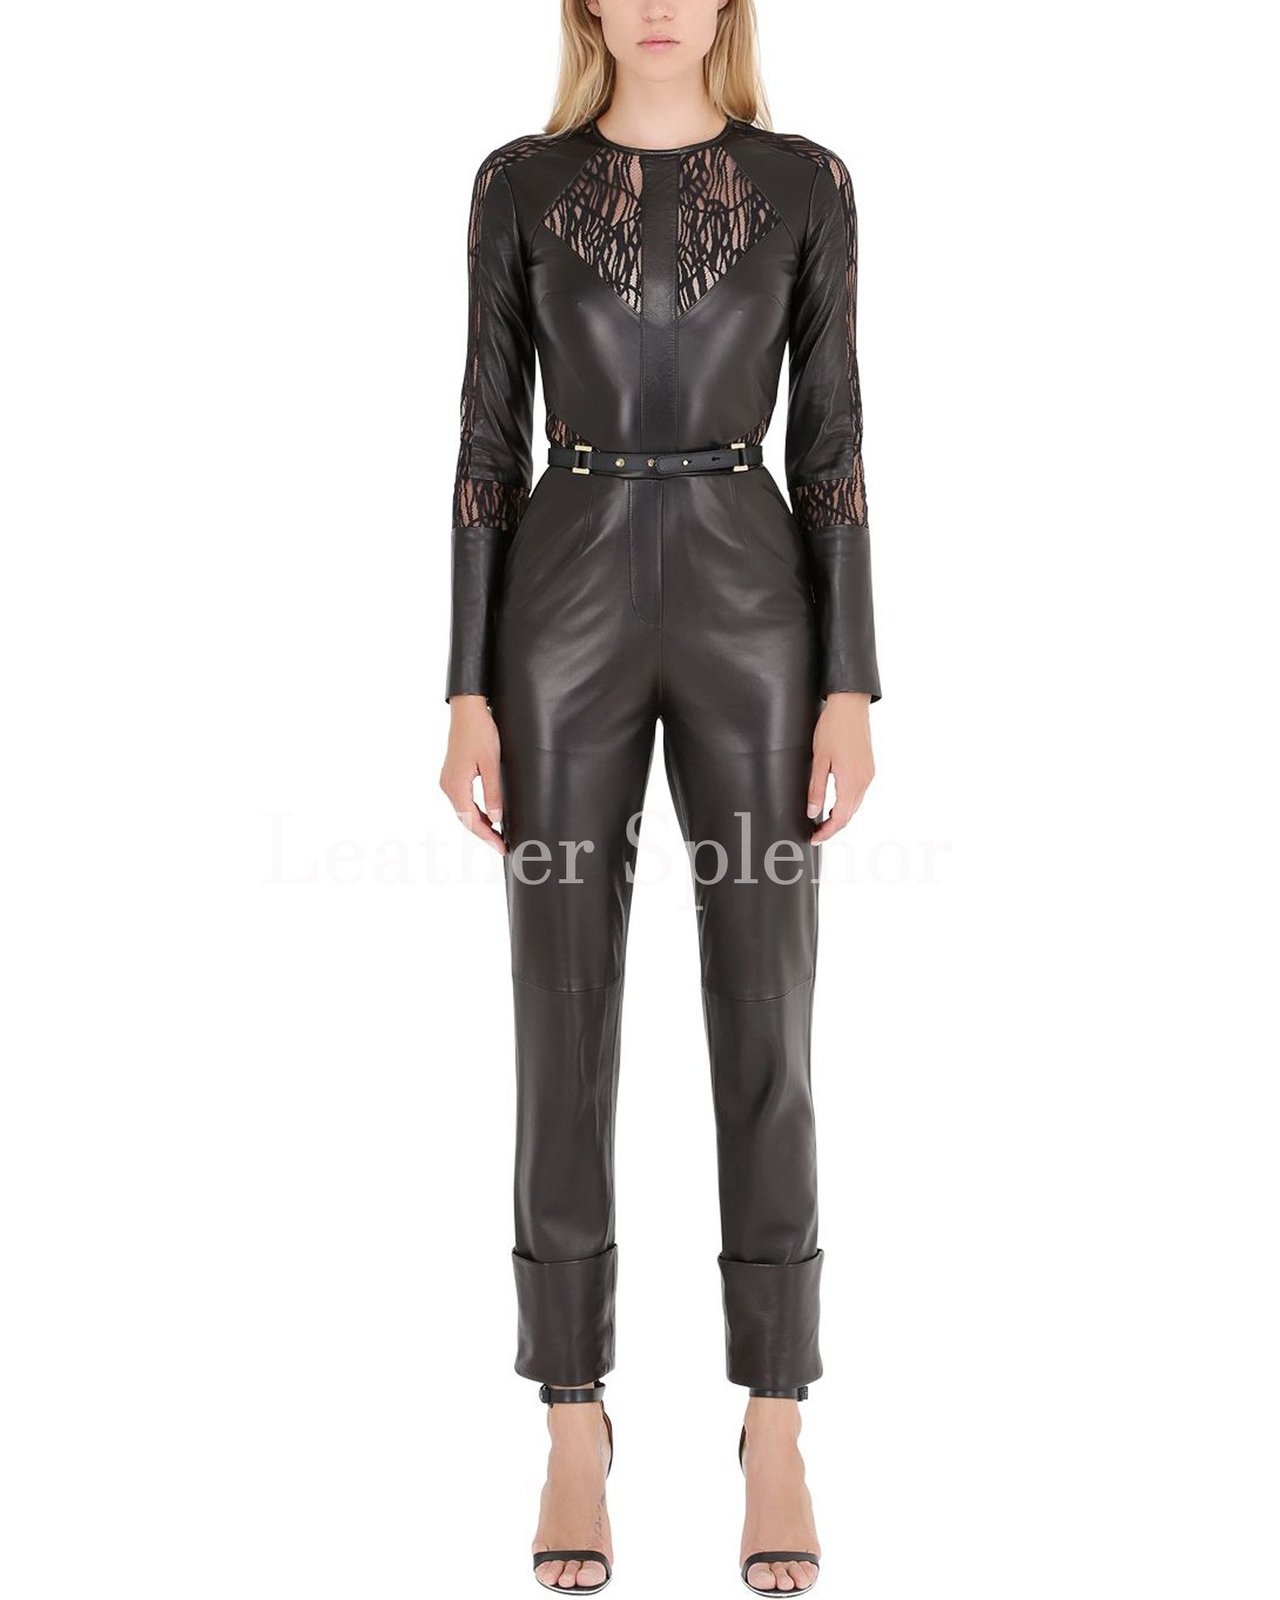 Leather N Lace Trendy Women Leather Jumpsuit